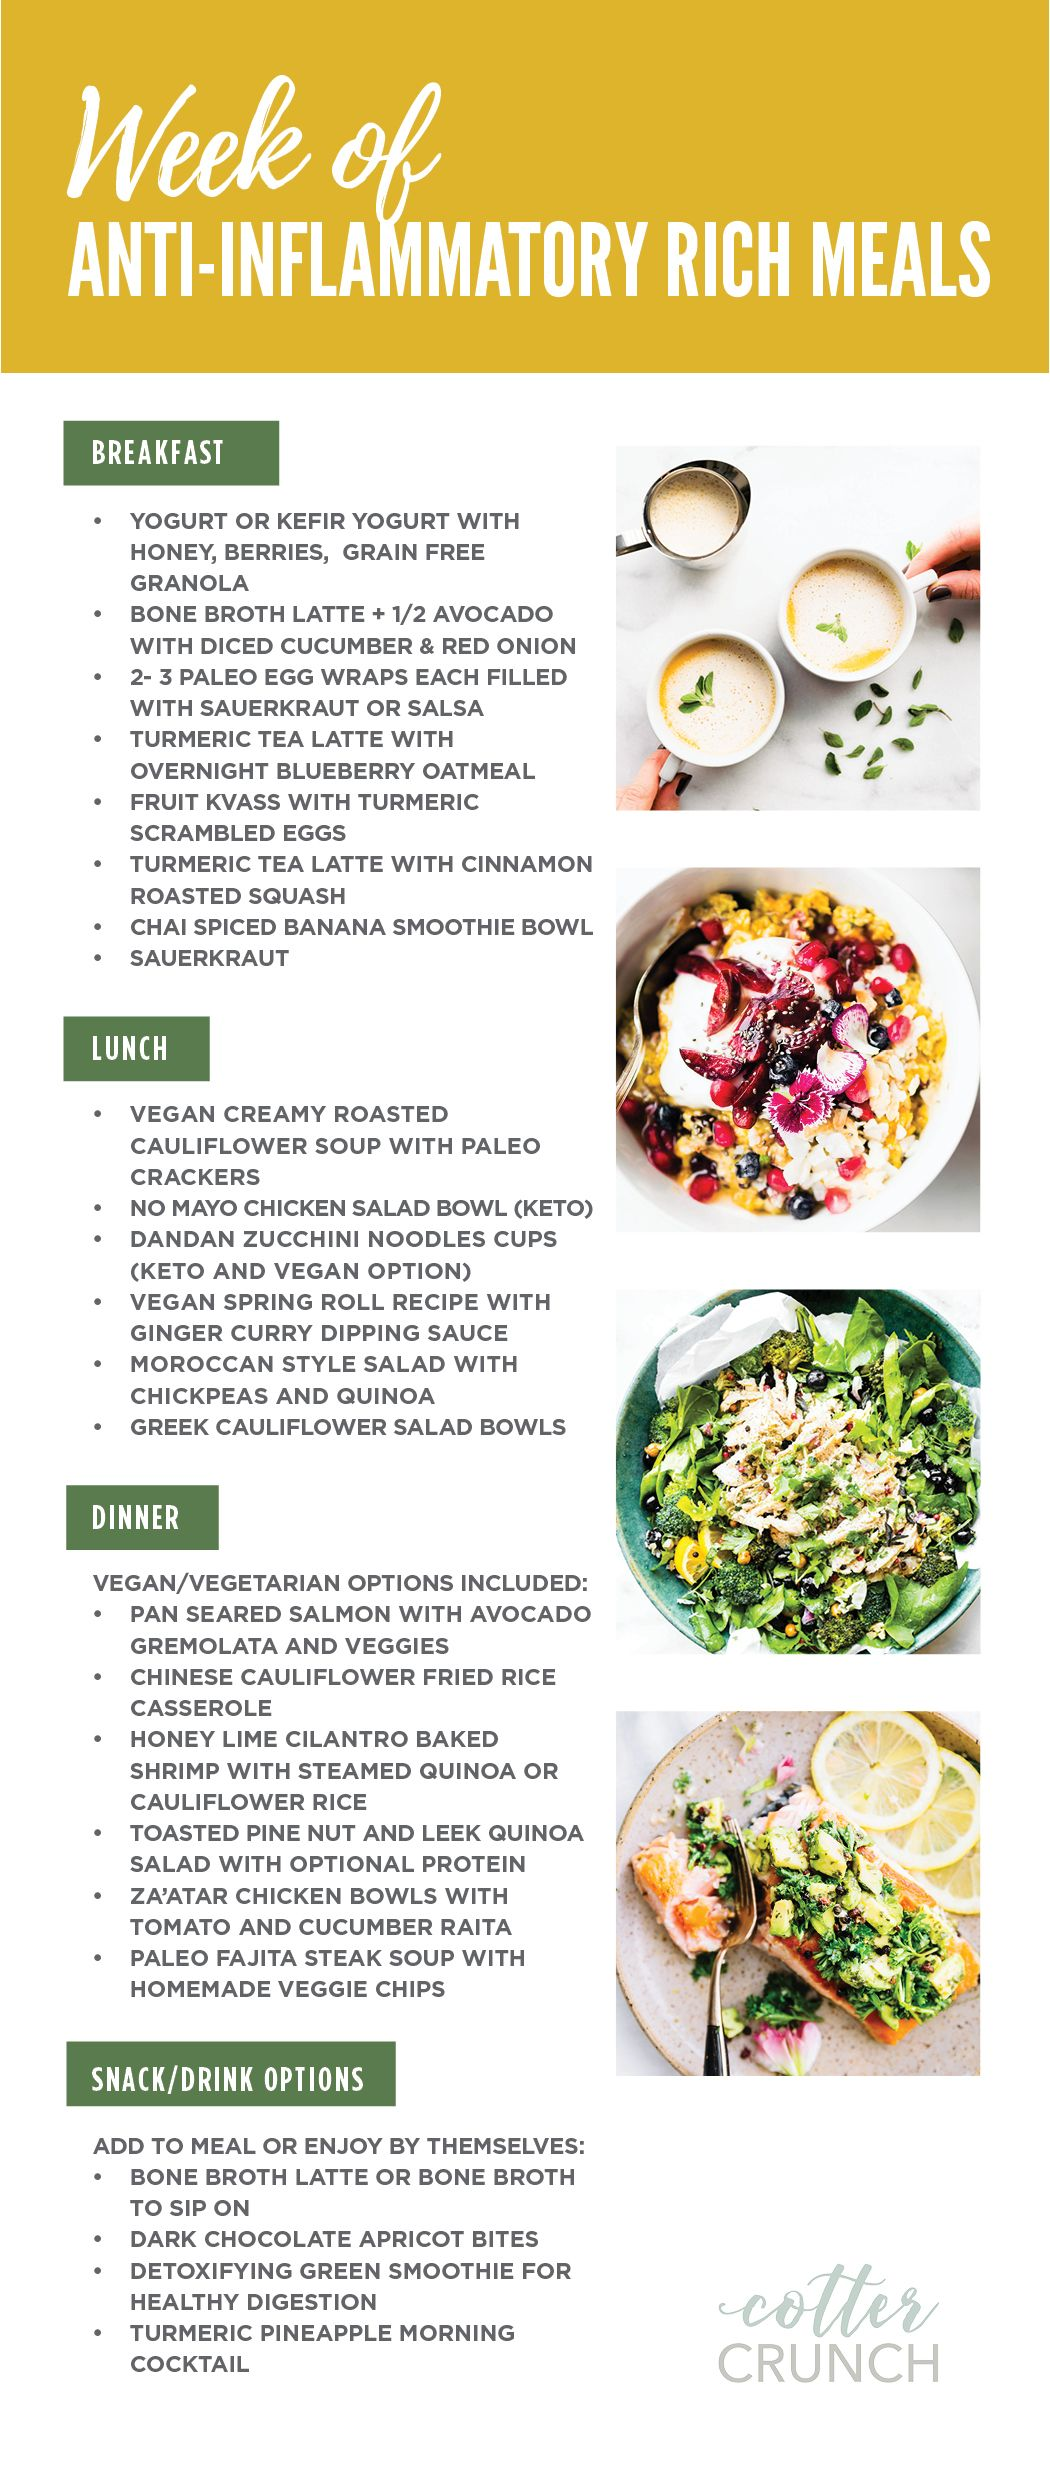 7 Day Anti Inflammatory Diet Reset And Action Plan Mealplan Antiinflam Anti Inflammatory Diet Recipes Anti Inflammatory Recipes Anti Inflammatory Foods List